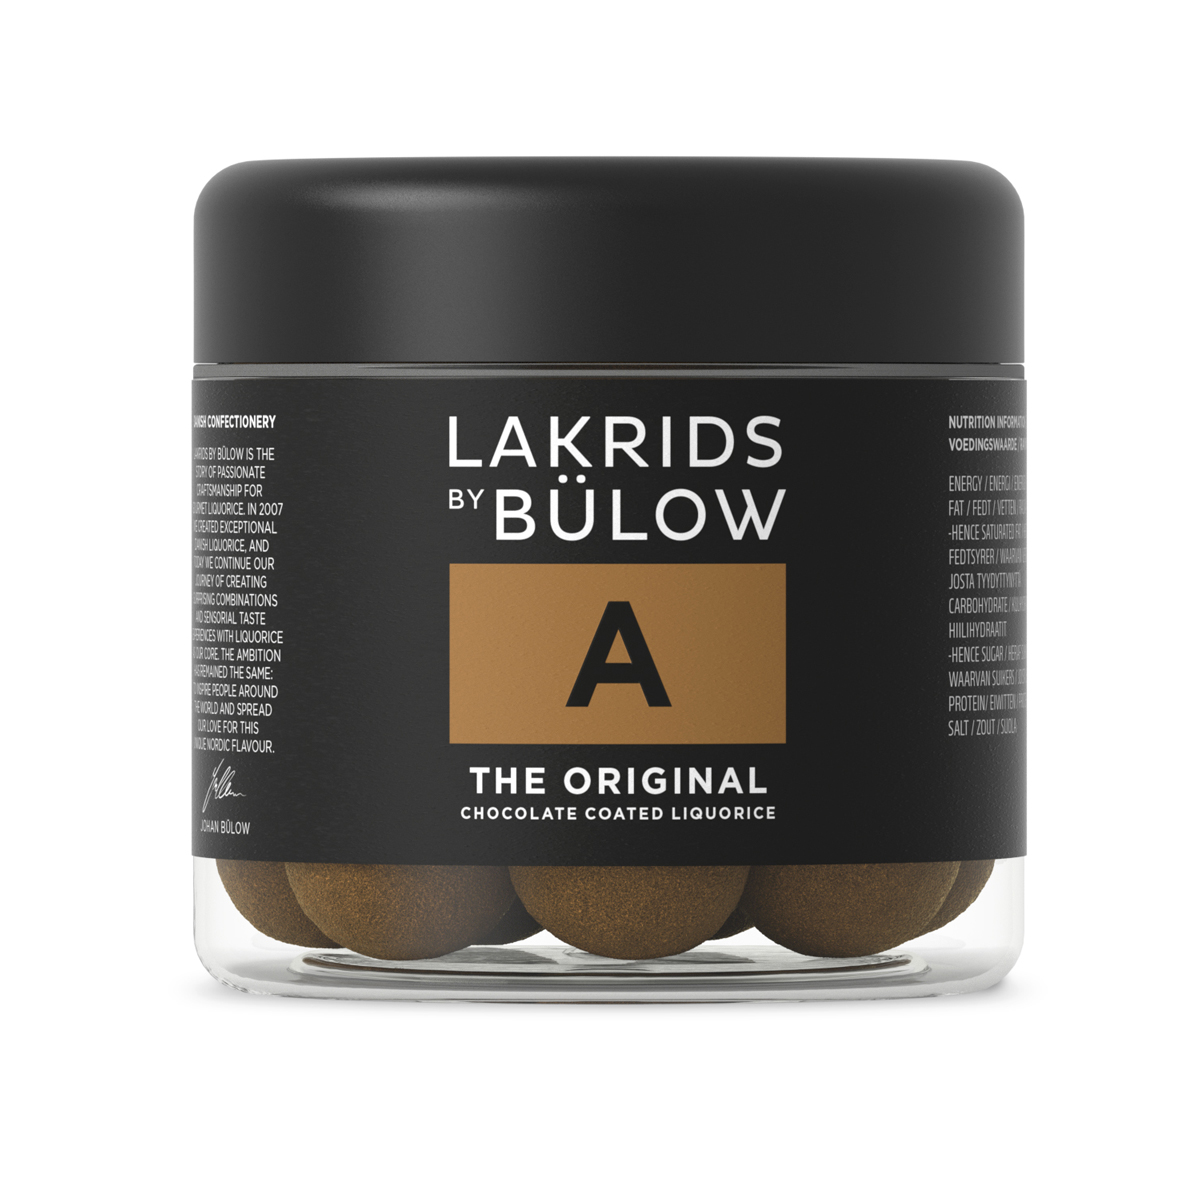 Lakrids A - The Original